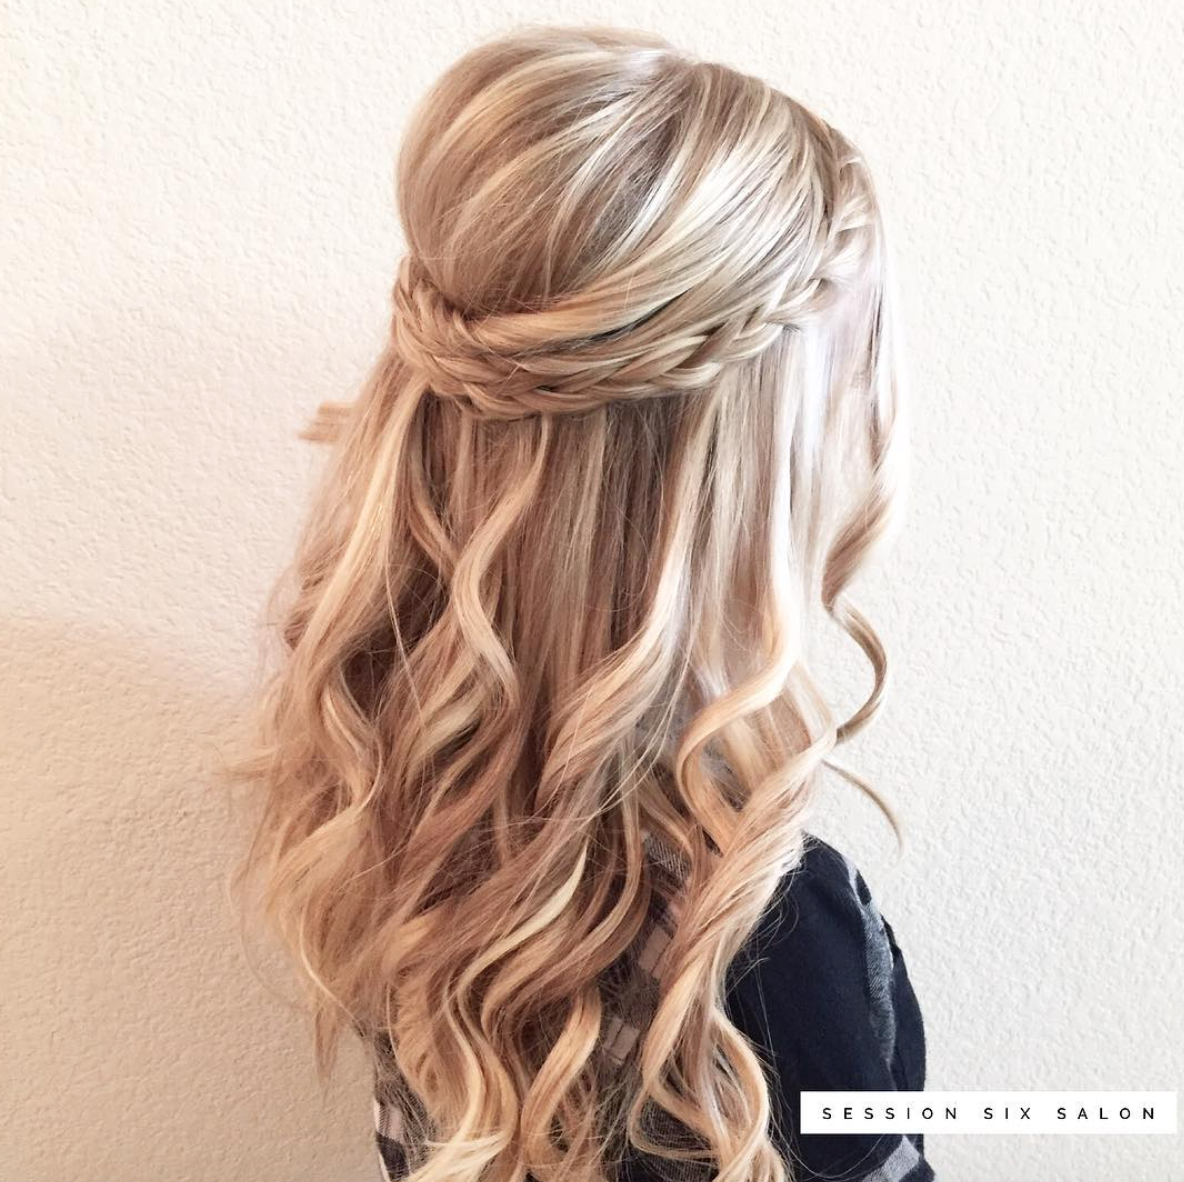 bridal updo with small braid